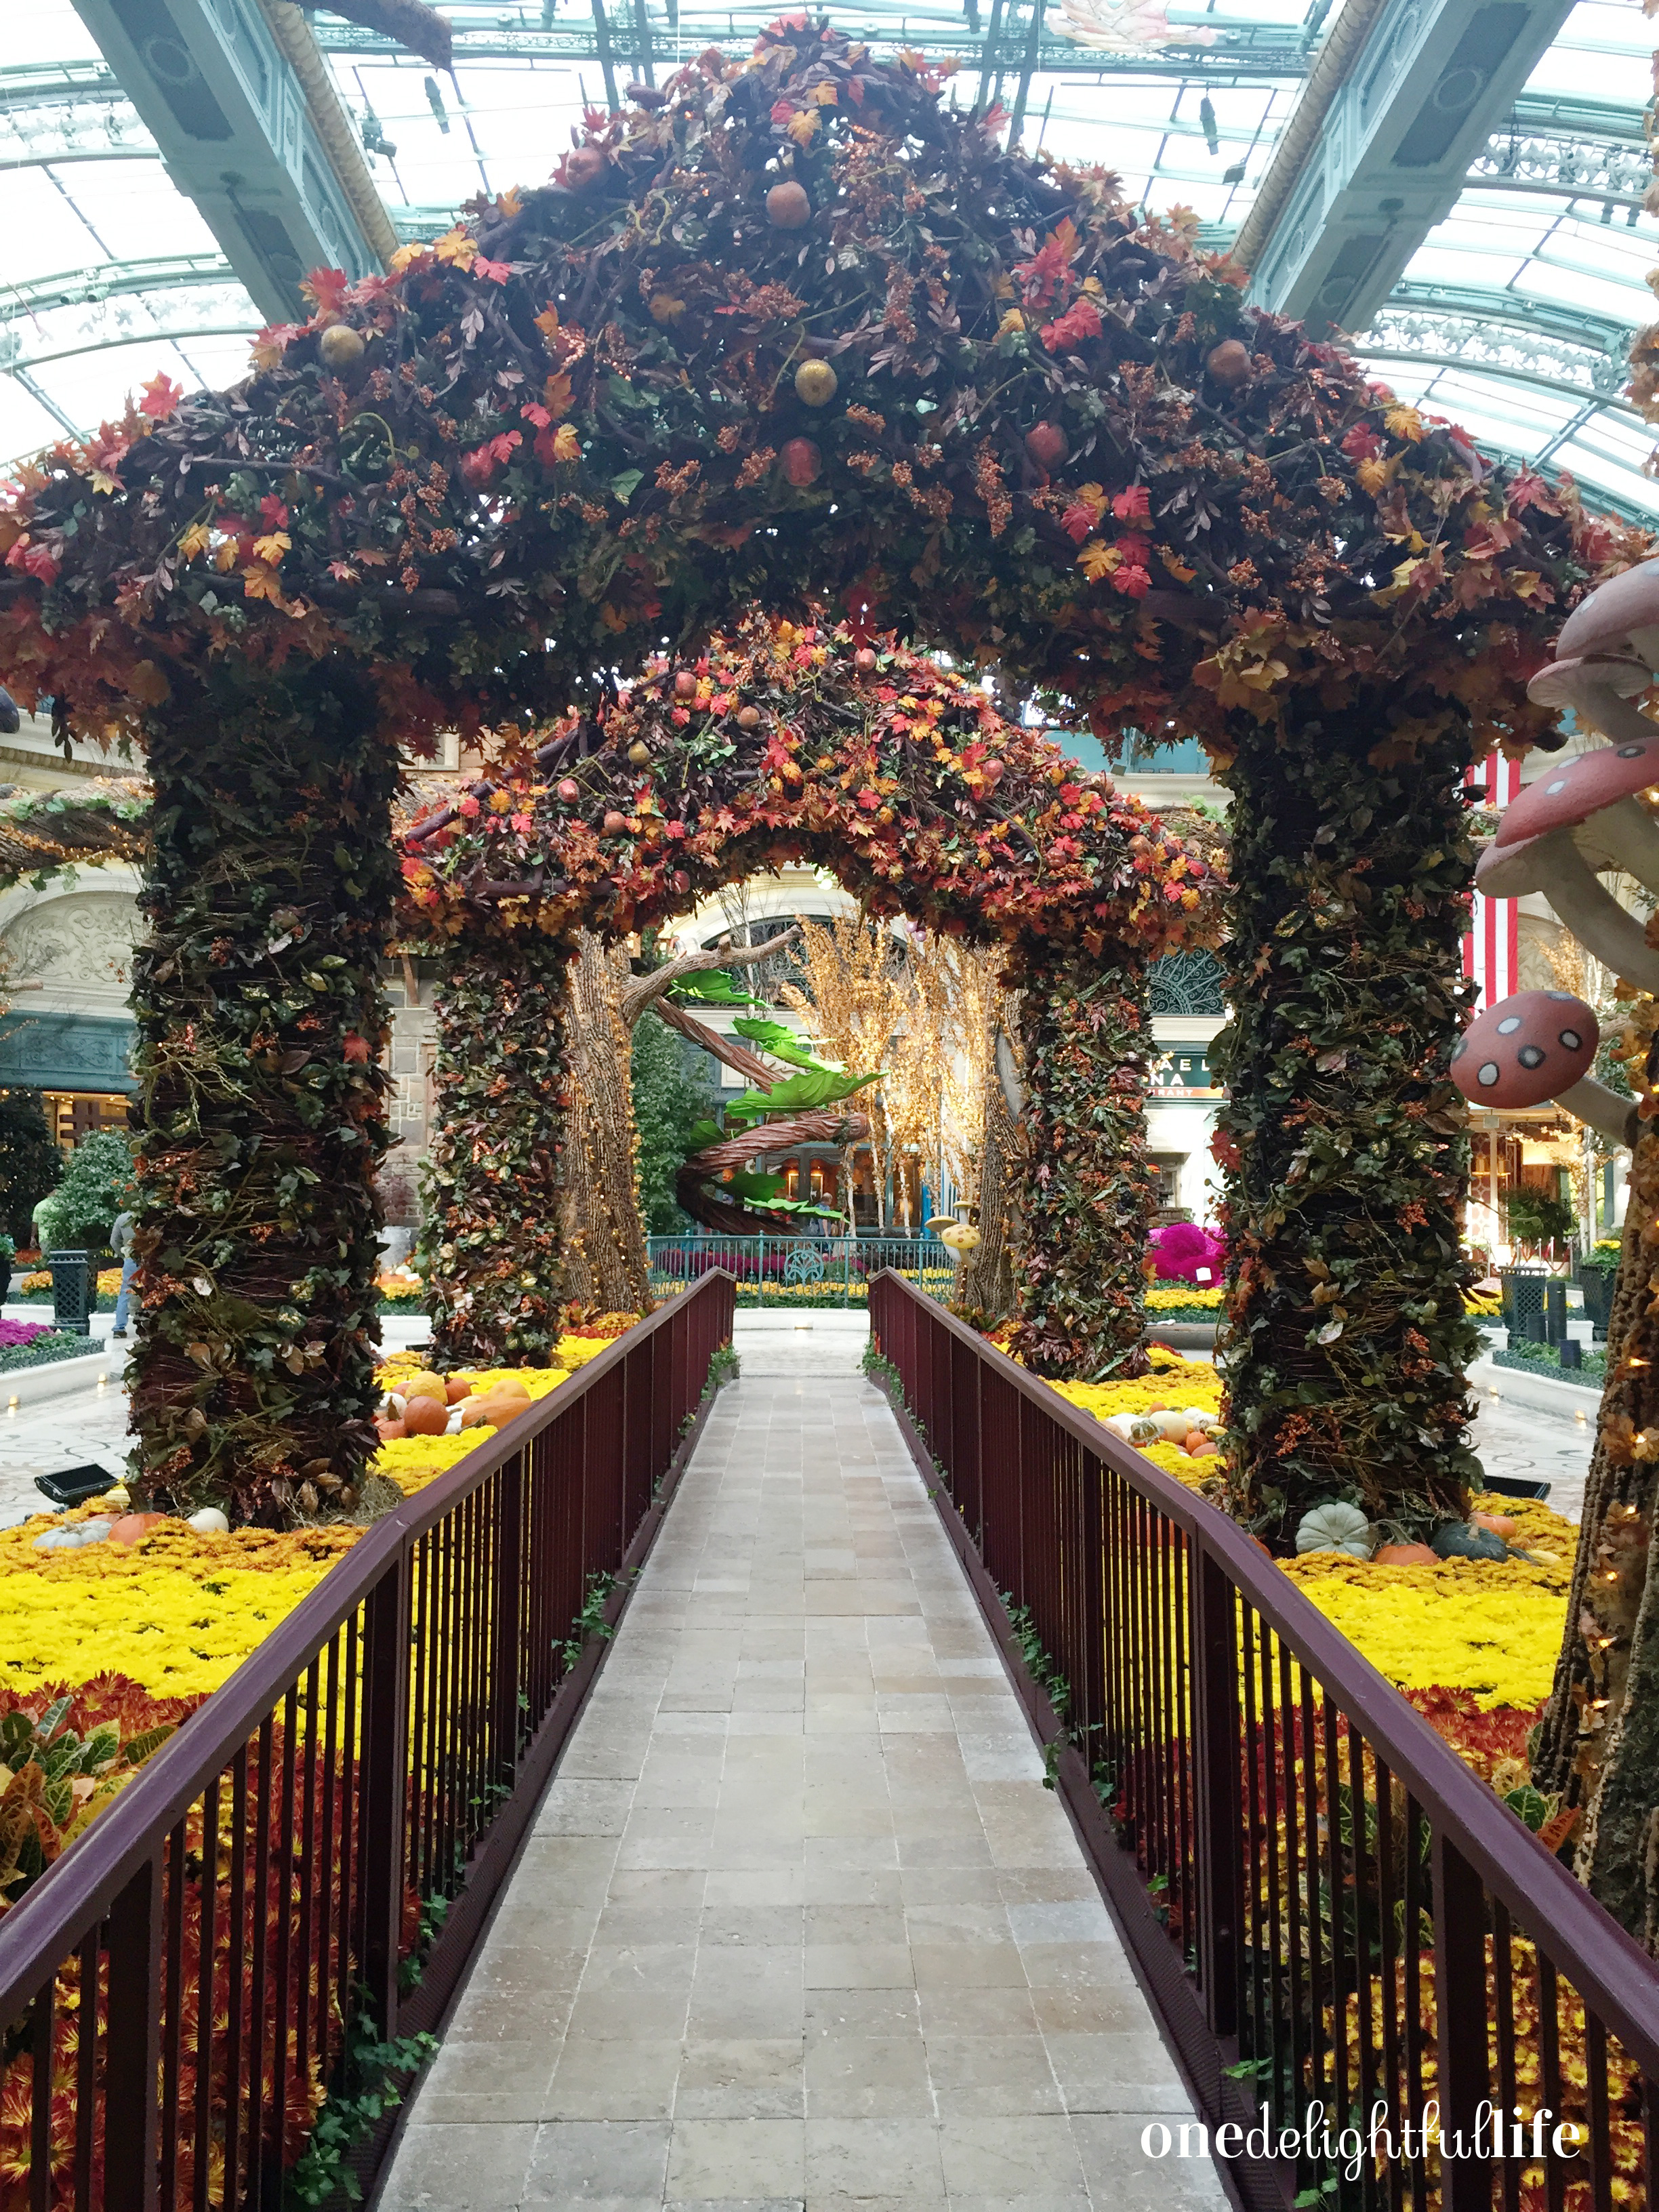 Main entrance to the conservatory gardens. Bellagio staff works on the flowers during early morning hours.